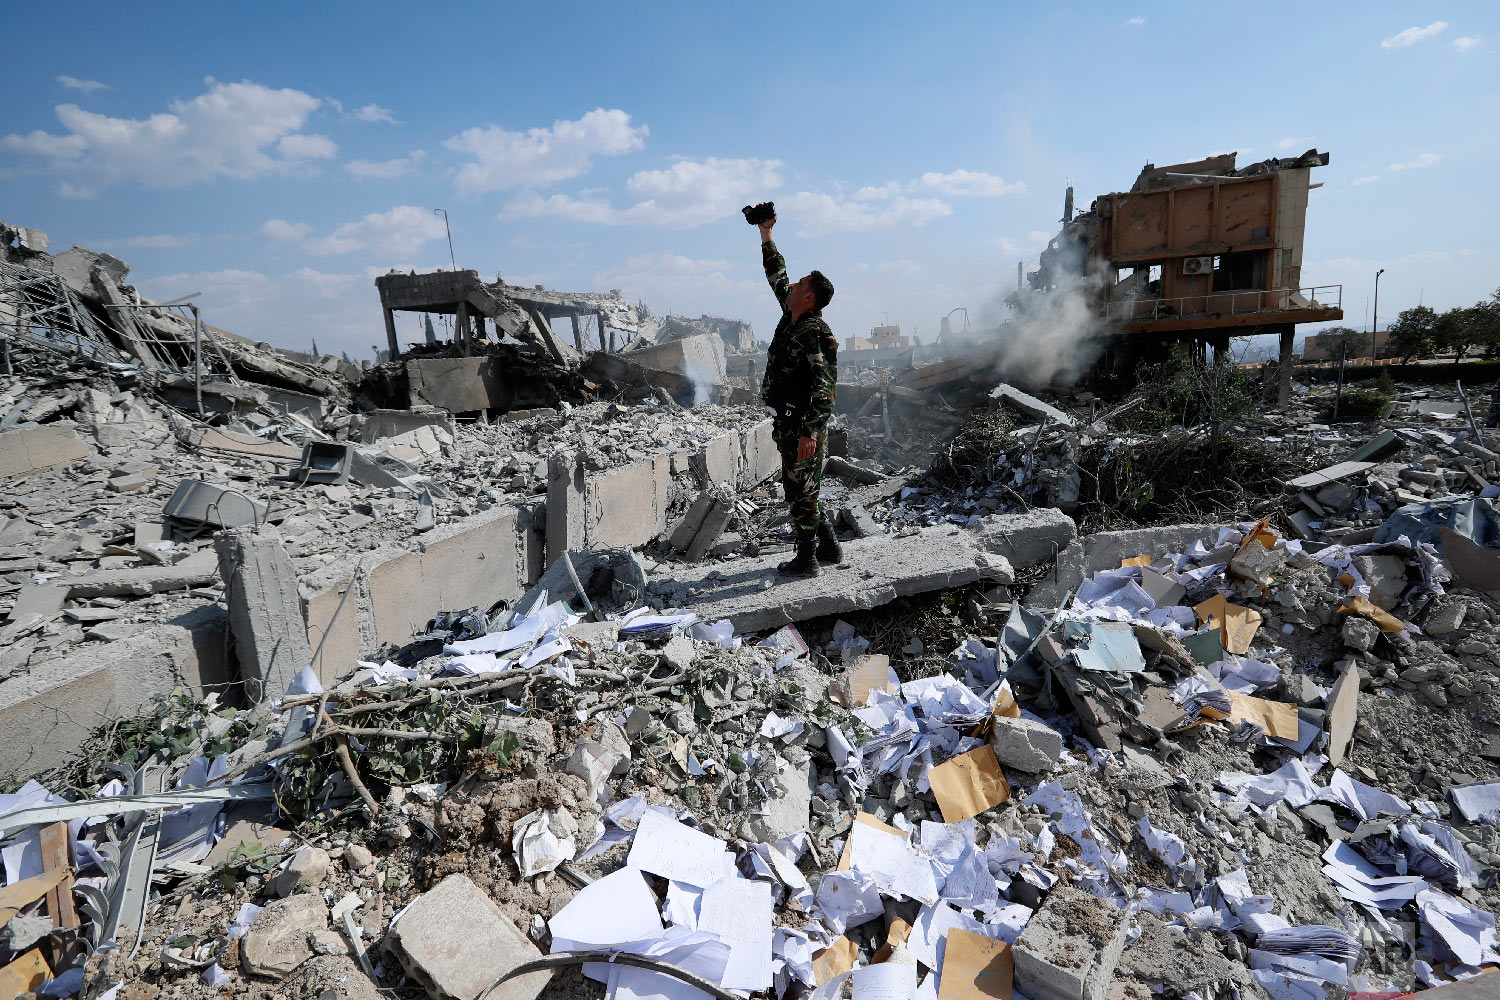 A Syrian soldier films the wreckage of the Syrian Scientific Research Center, which was attacked by U.S., British and French military strikes to punish President Bashar Assad for a suspected chemical attack against civilians, in the Damascus suburb of Barzeh, Syria, on April 14, 2018. (AP Photo/Hassan Ammar)